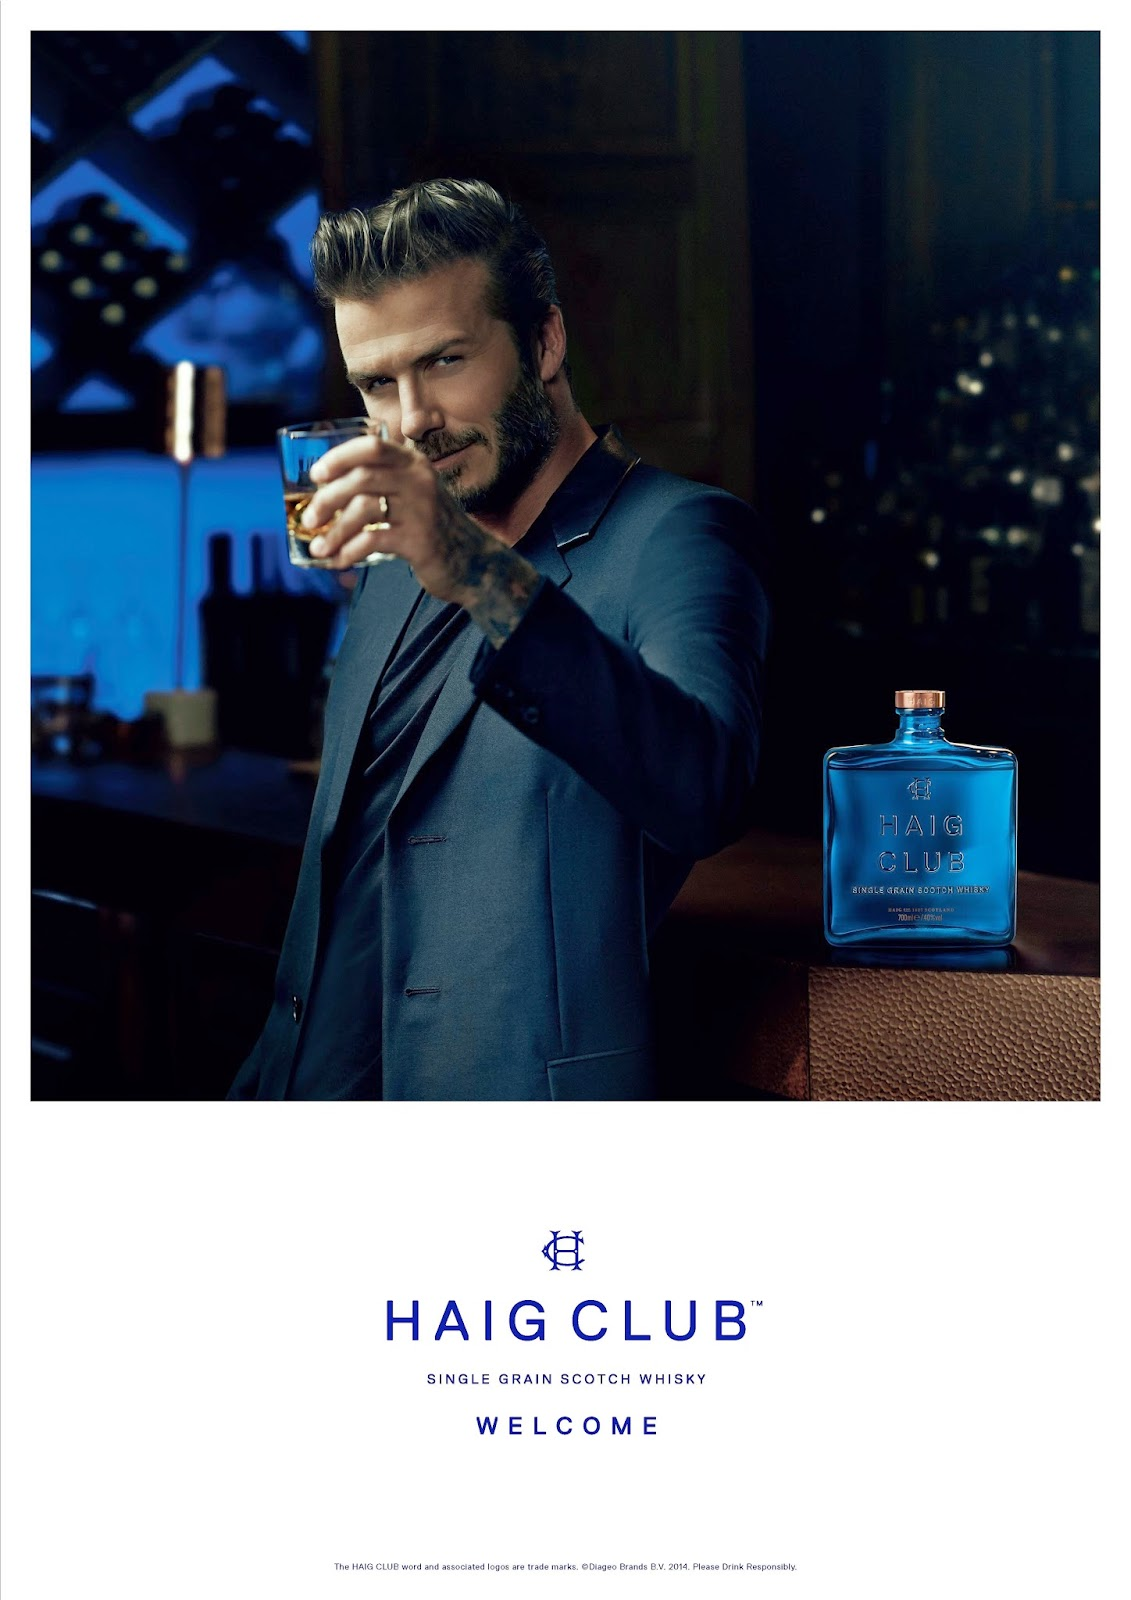 Haig Club Whiskey by David Beckham